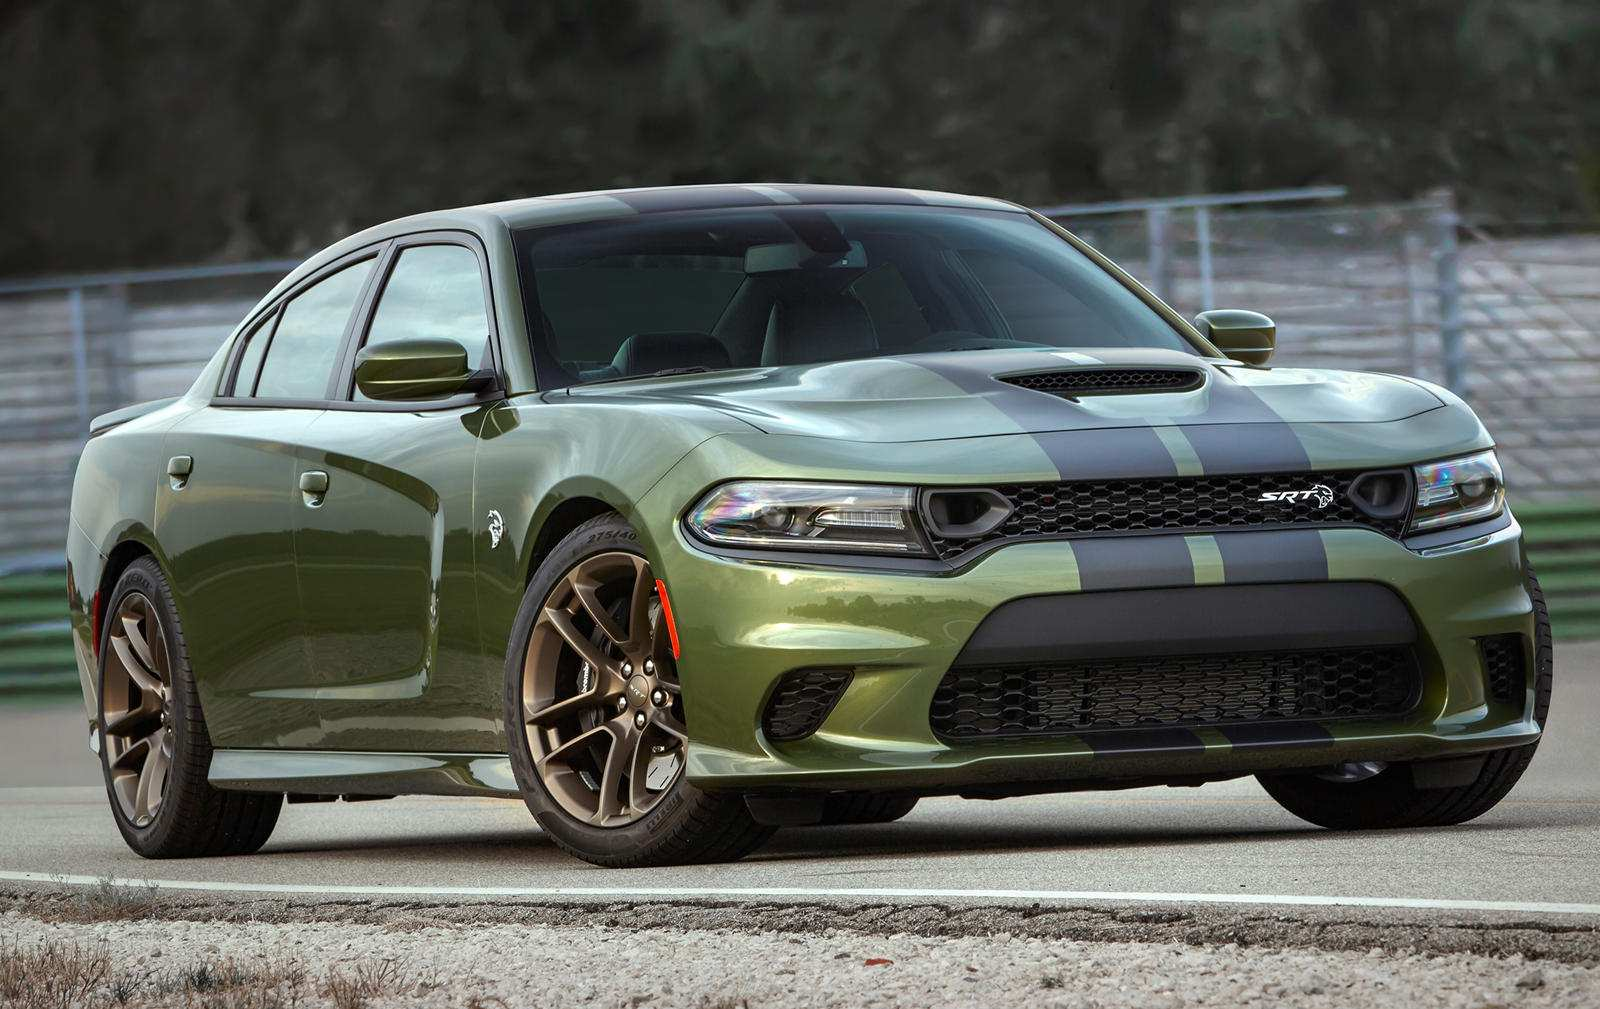 74 Great Dodge For 2020 Configurations by Dodge For 2020